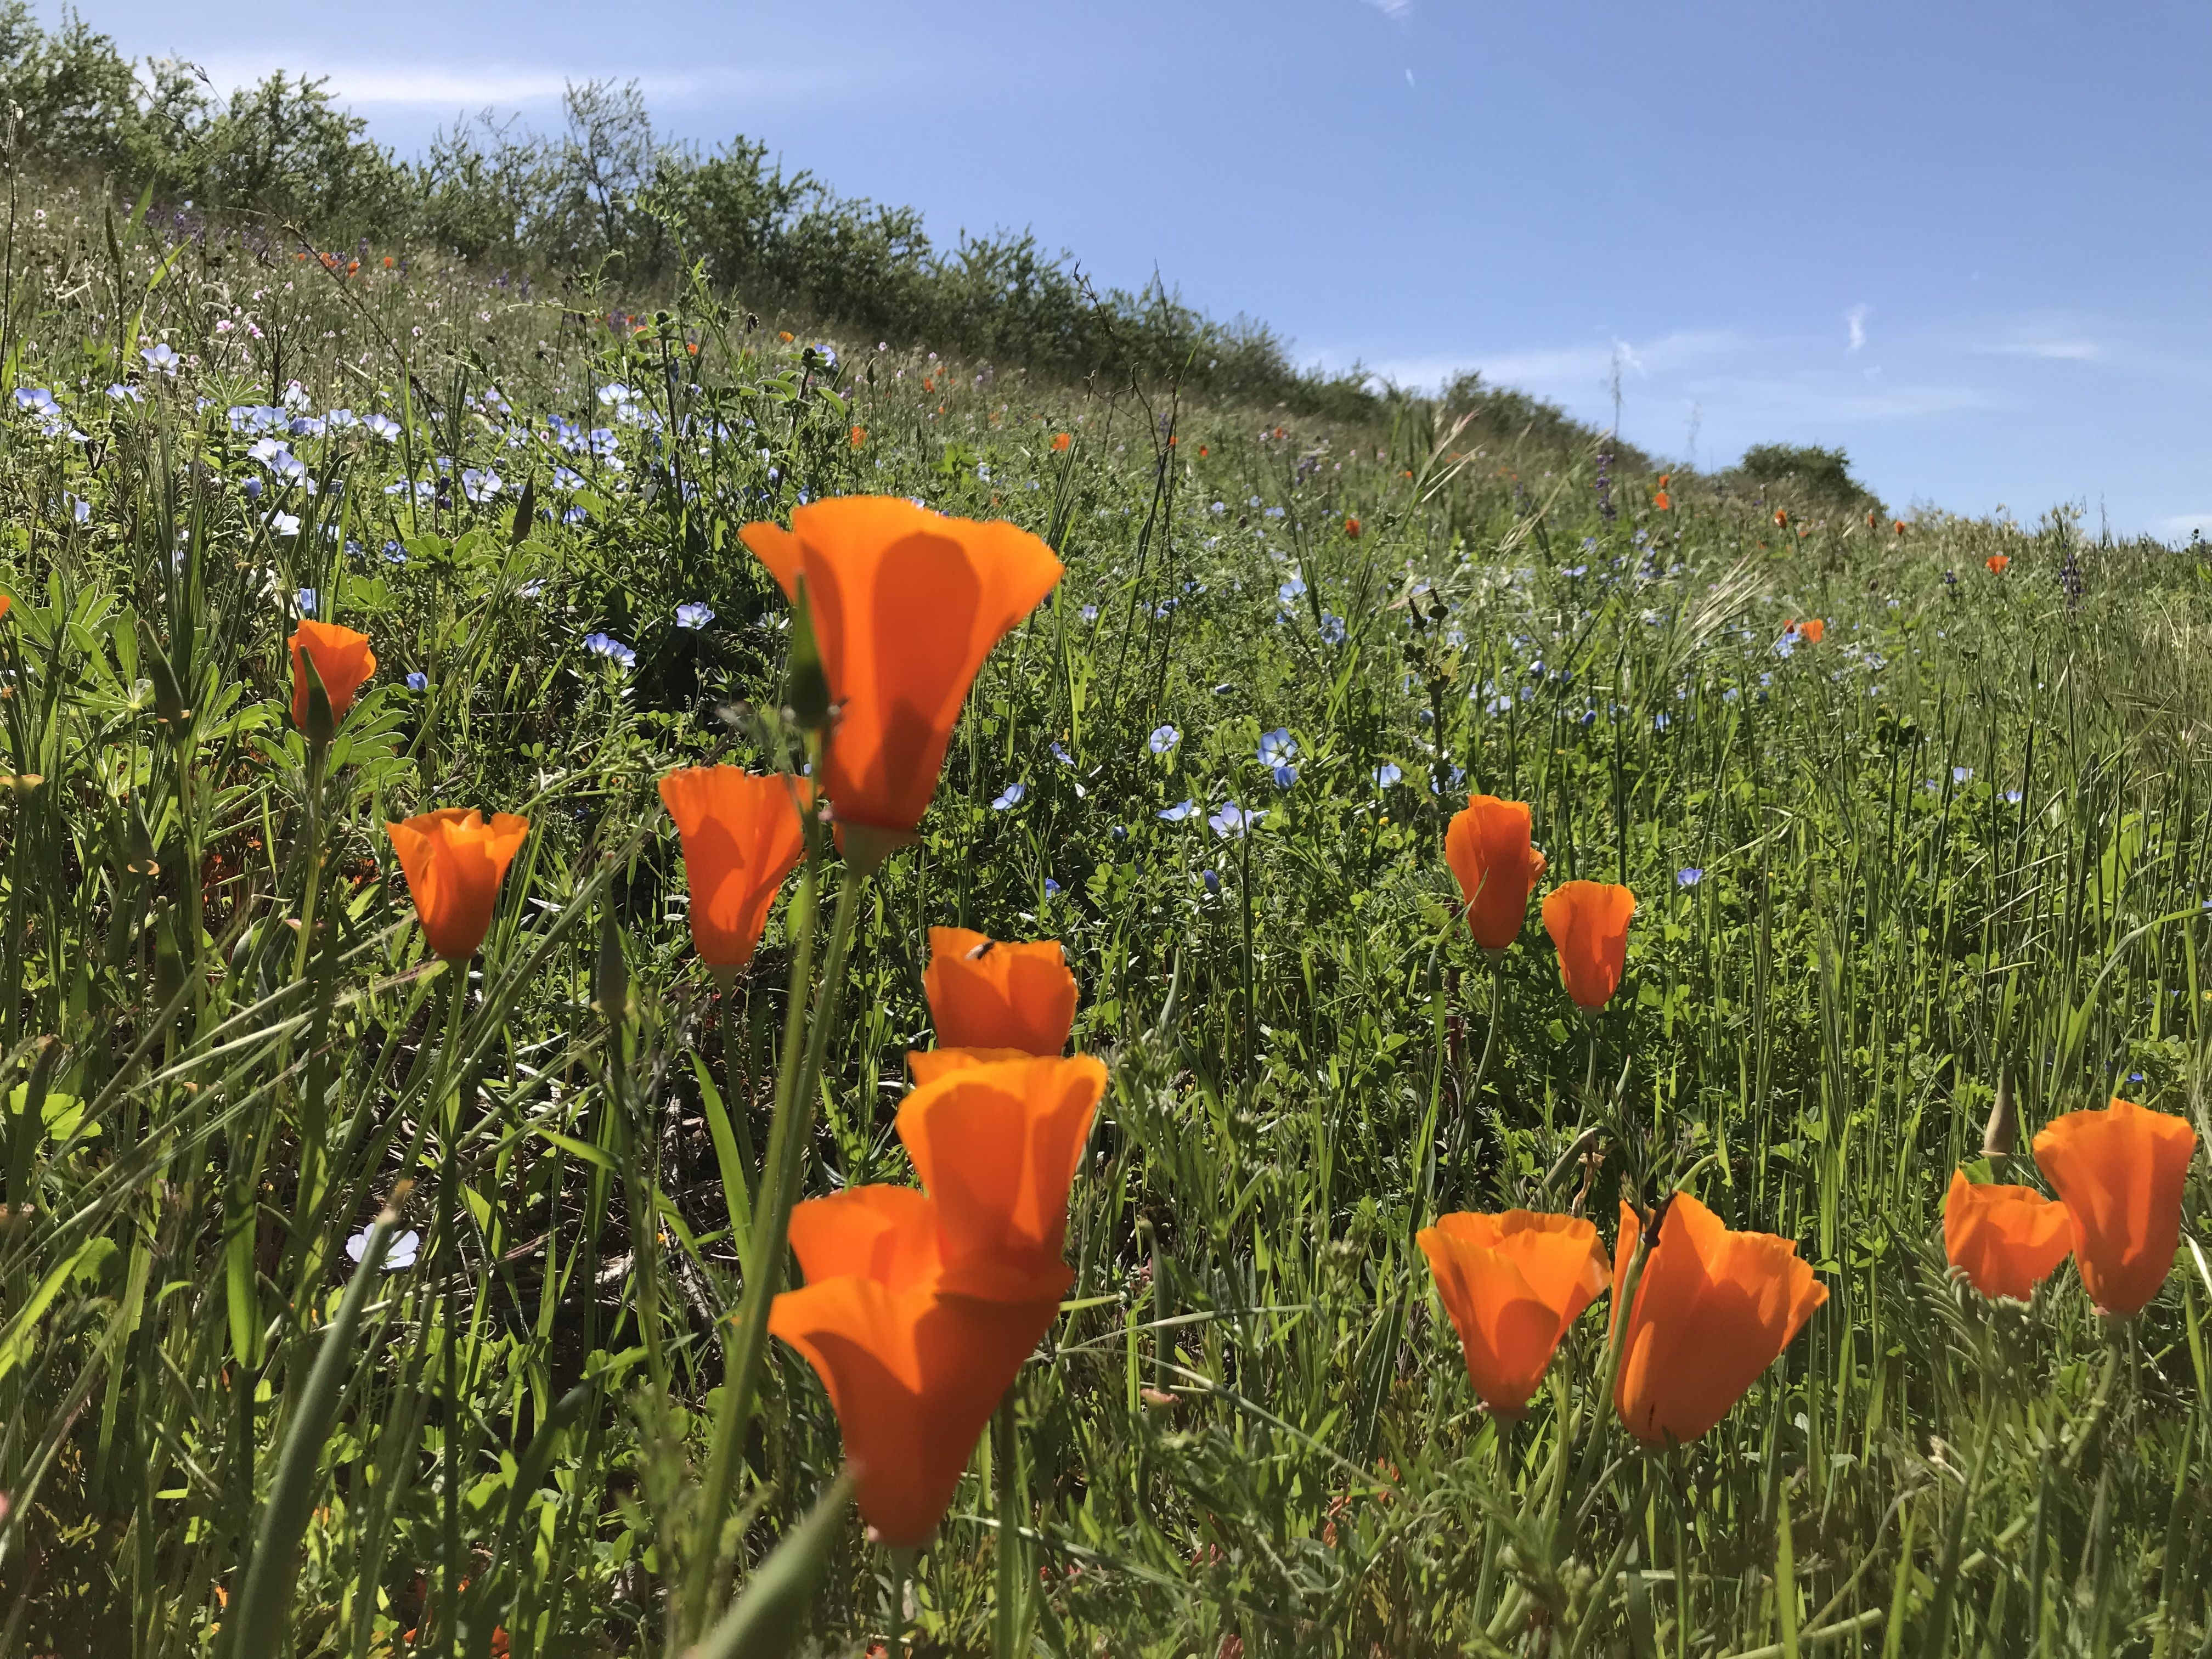 A field of vivid red-orange California poppies and small daisy-like purple flowers..